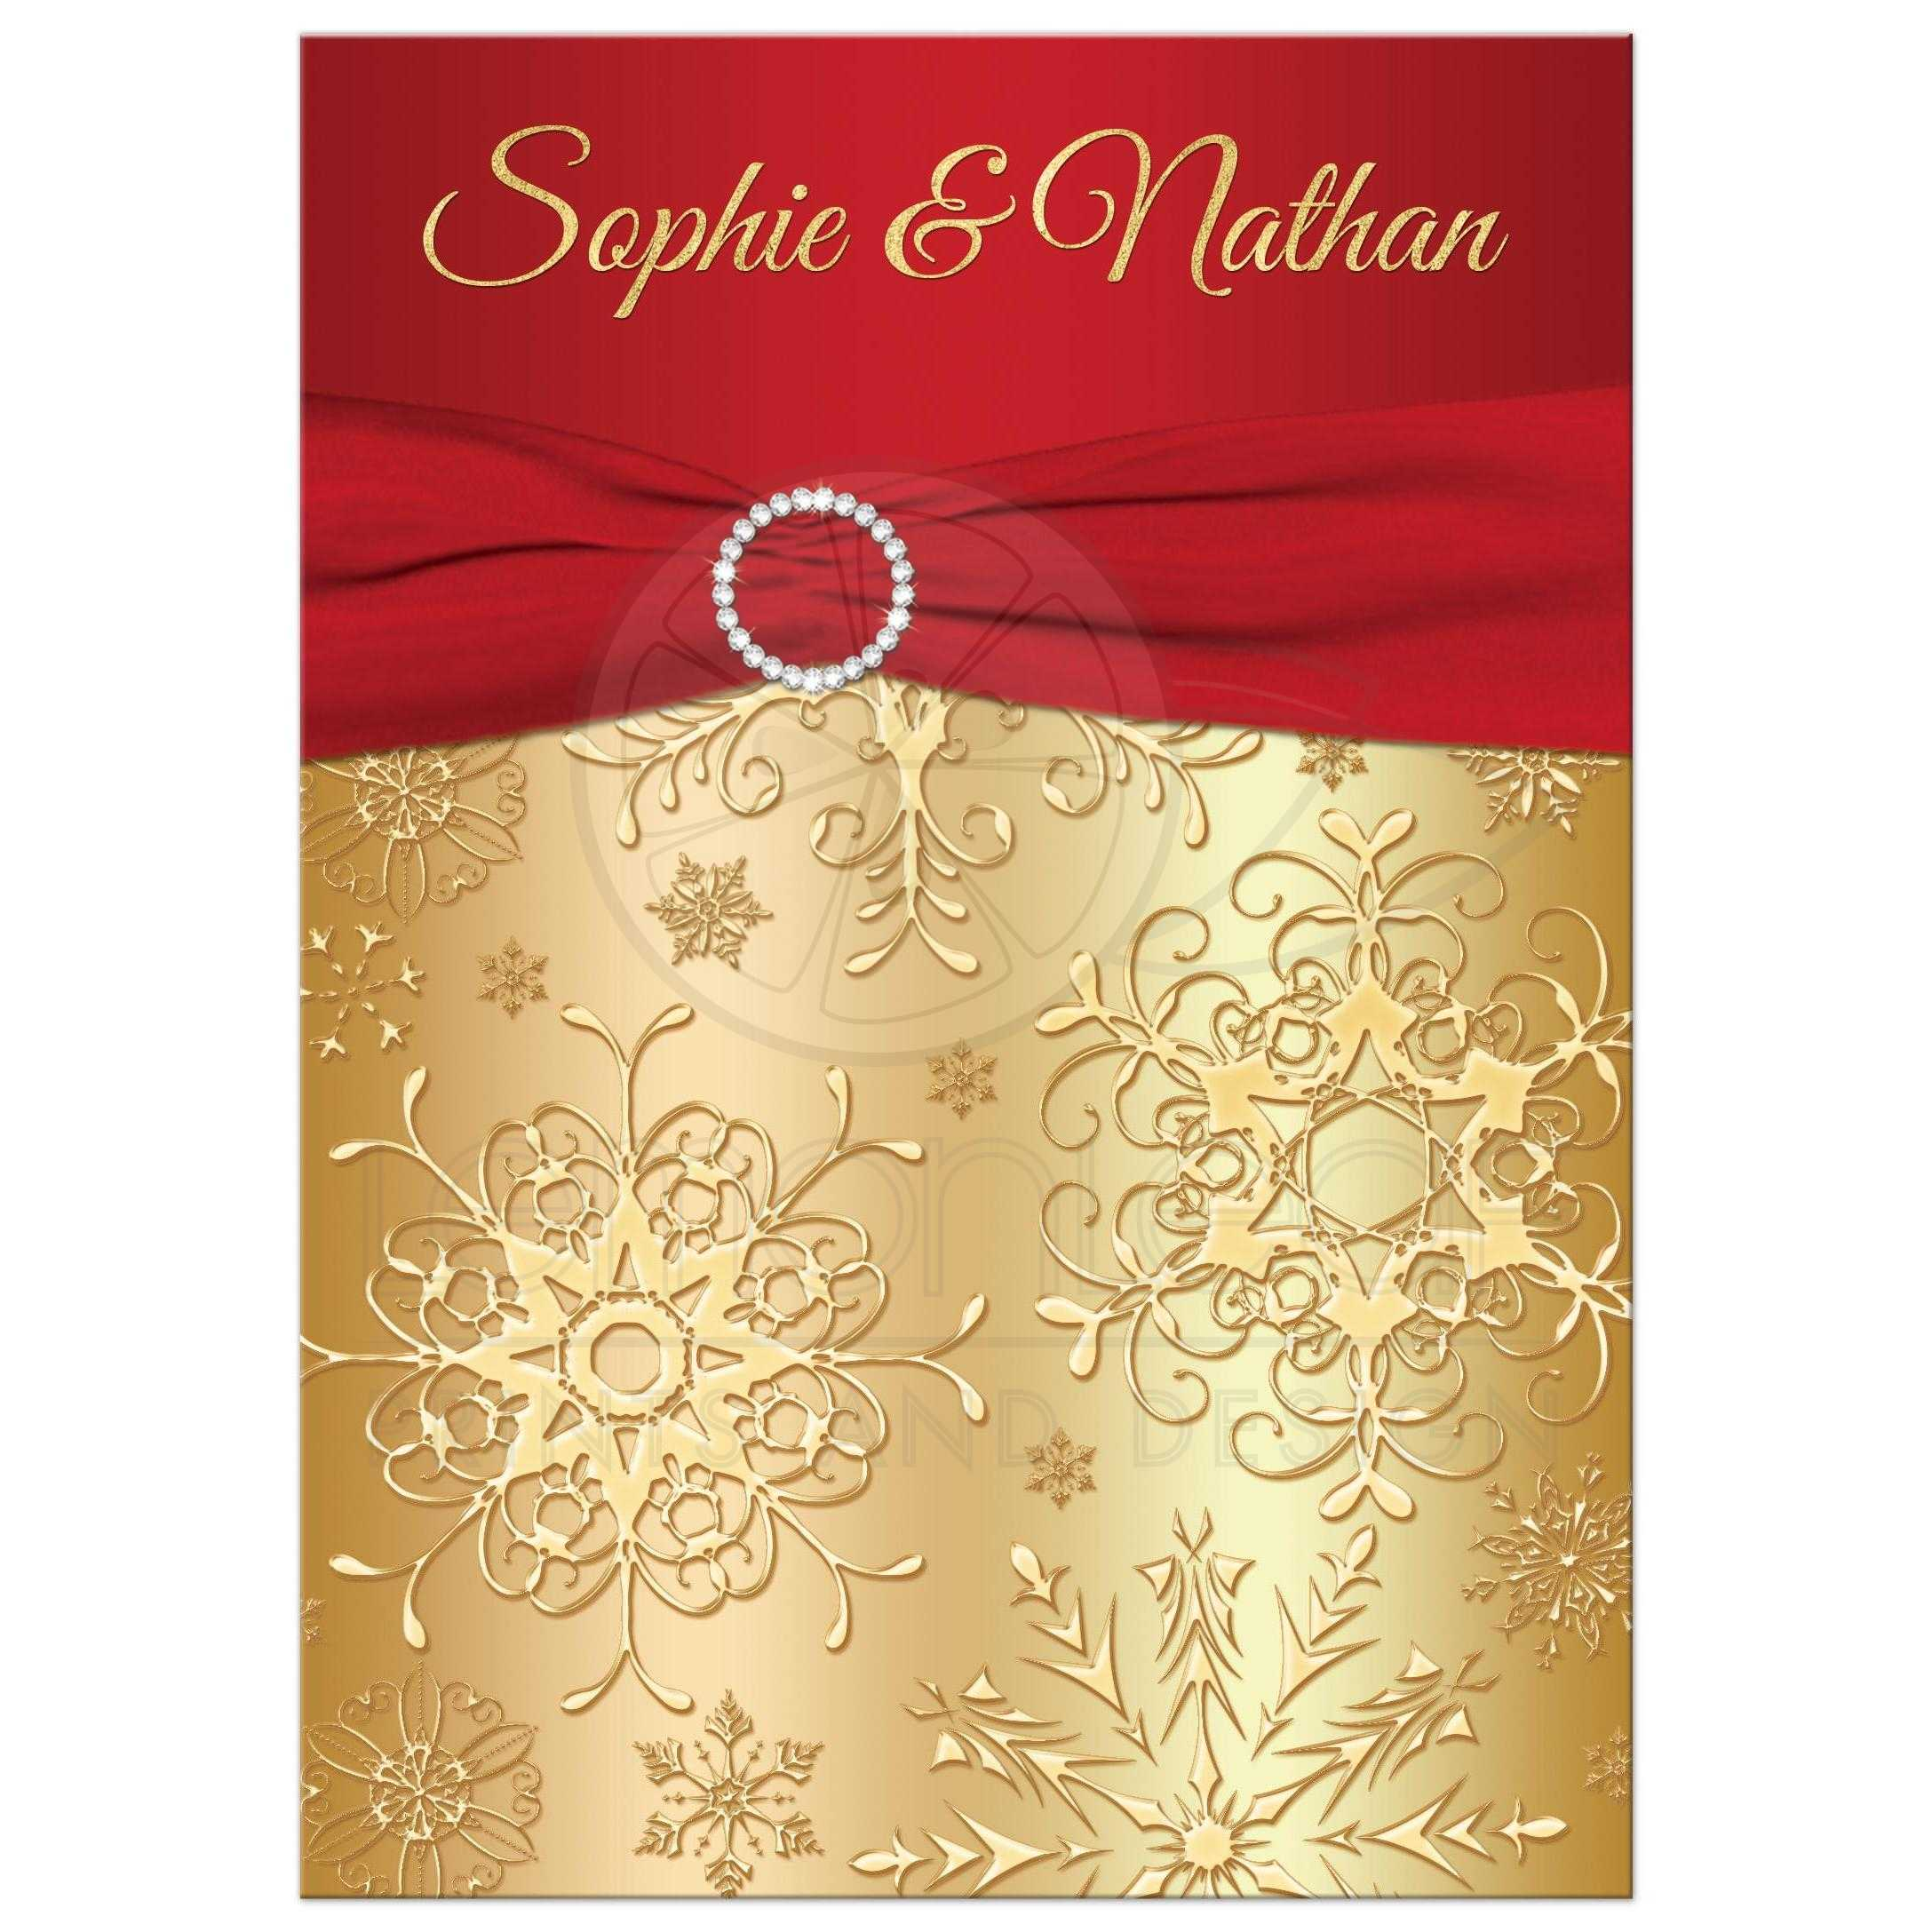 Winter wedding invitation red gold snowflakes printed ribbon great red and gold winter wedding invitation with snowflakes ribbon and jewel buckle brooch stopboris Image collections